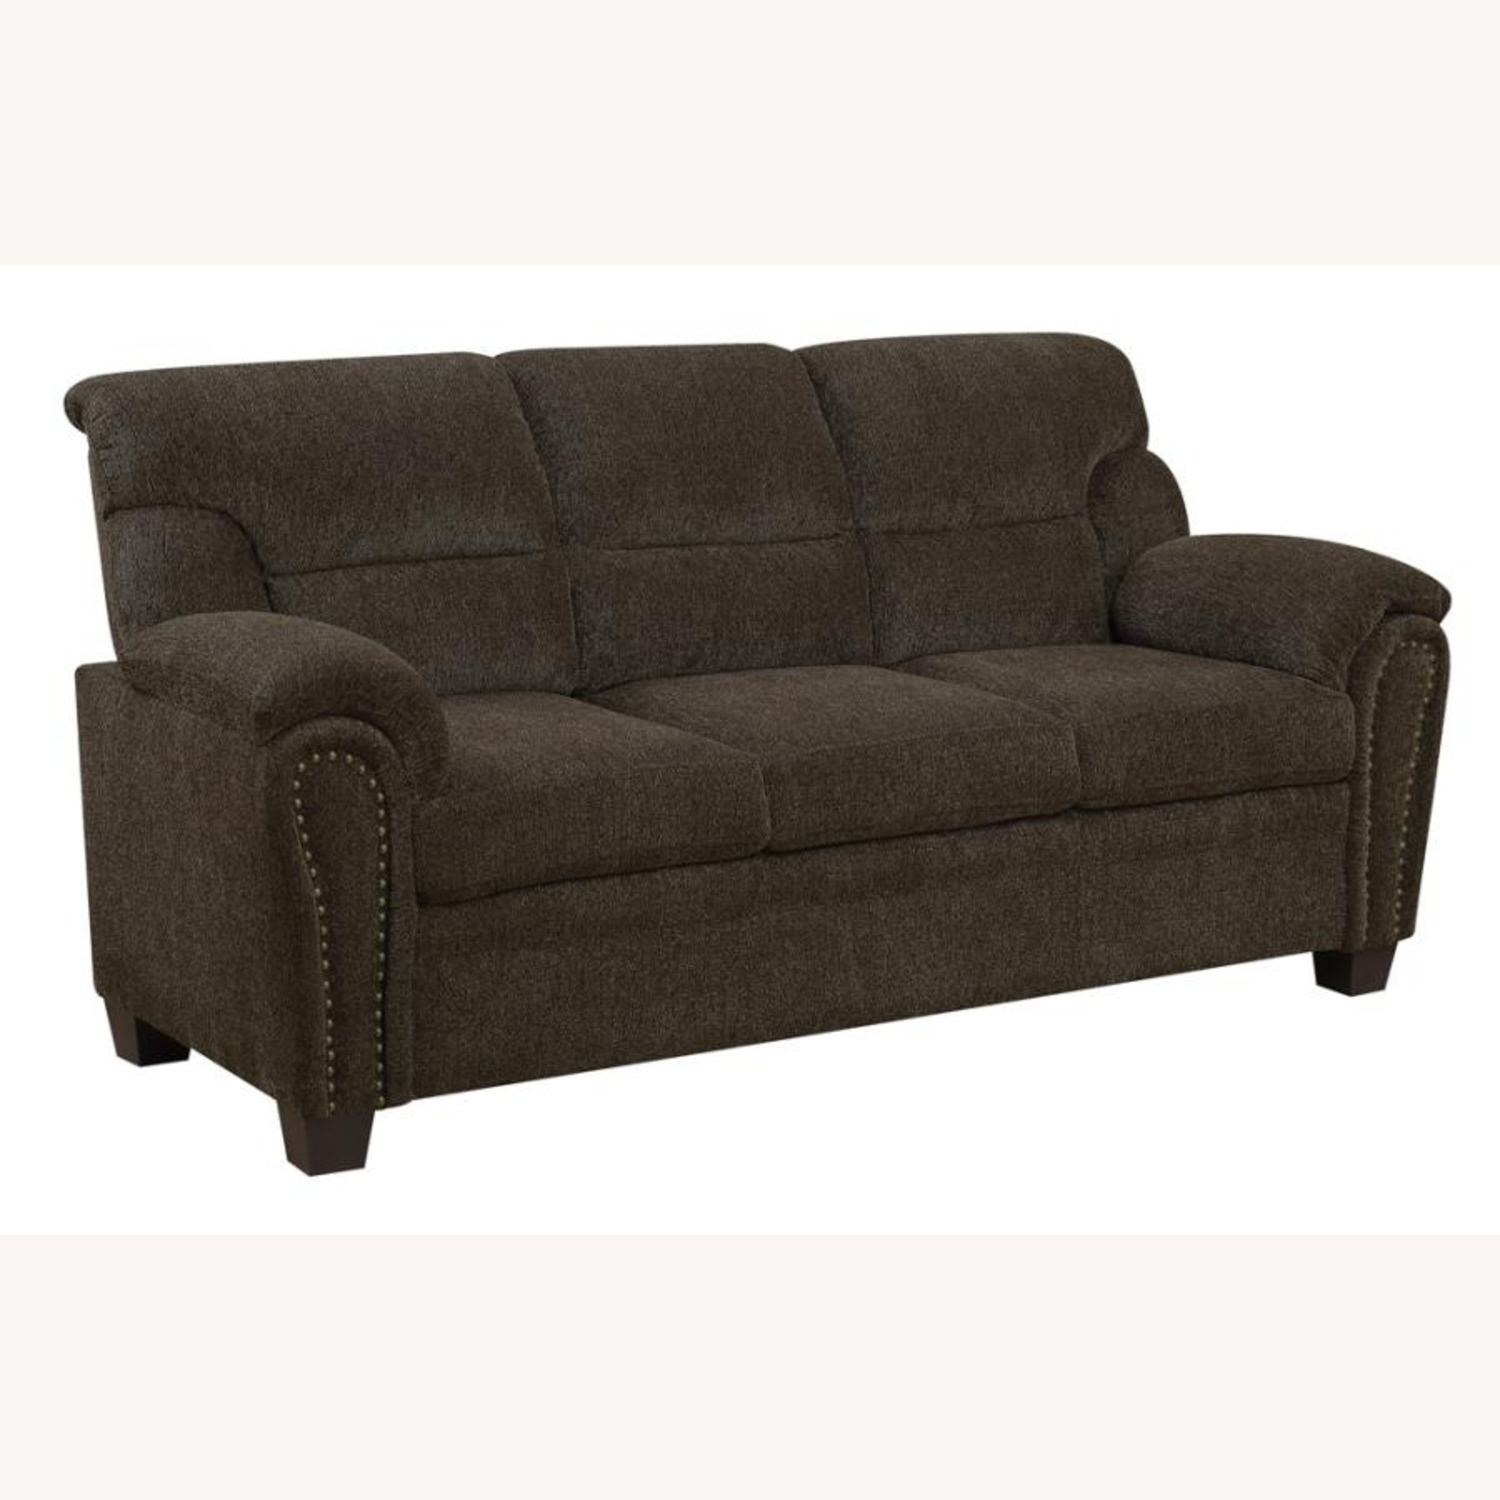 Sofa In Brown Chenille Upholstery Finish - image-1